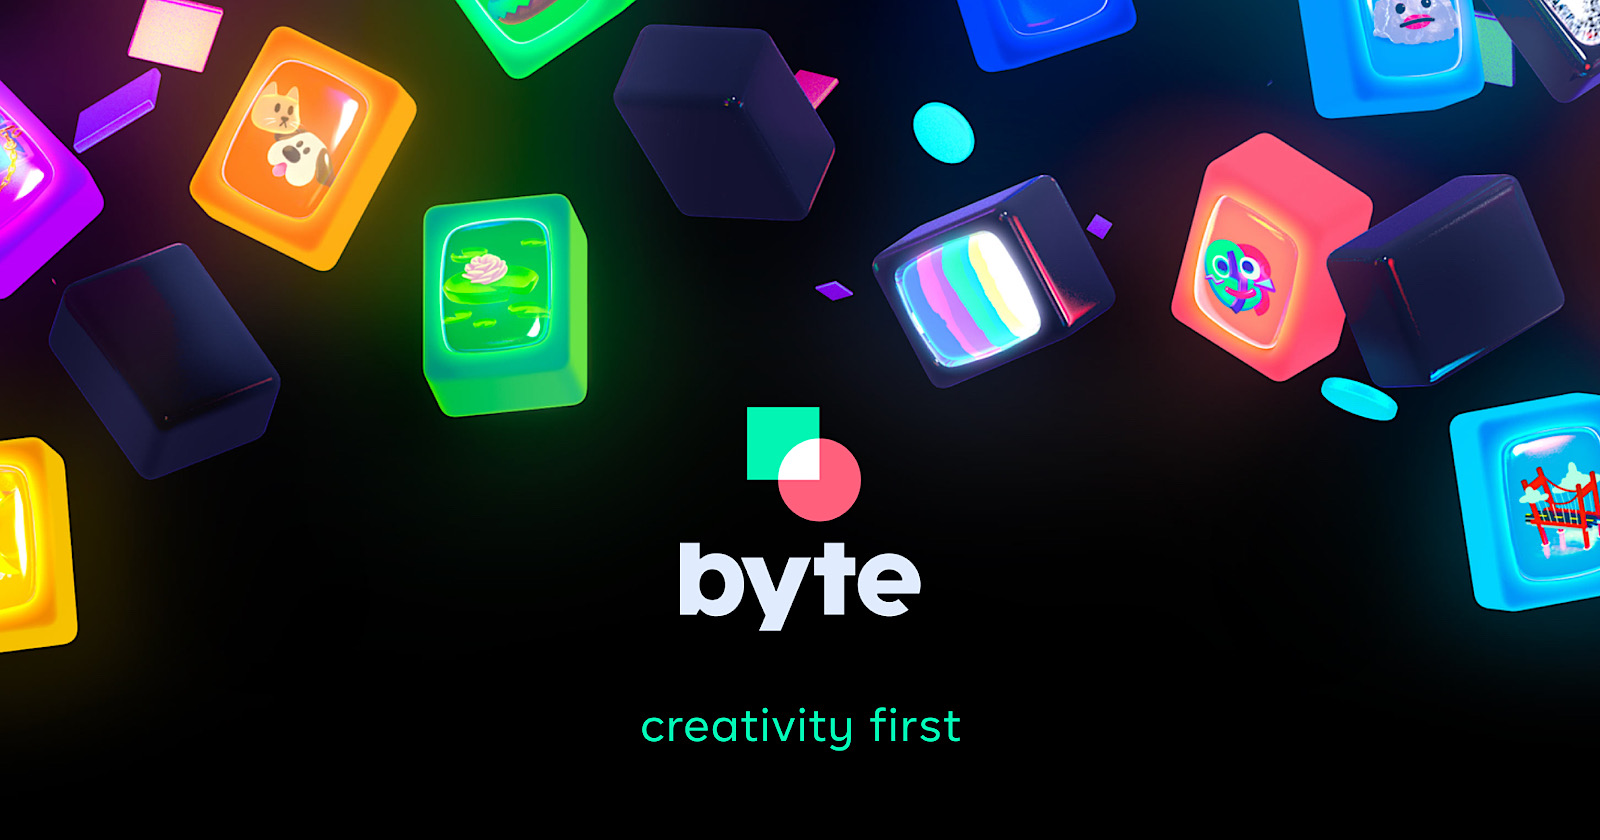 Byte, a 6-Second Looping Video App, Launches on iOS and Android ...